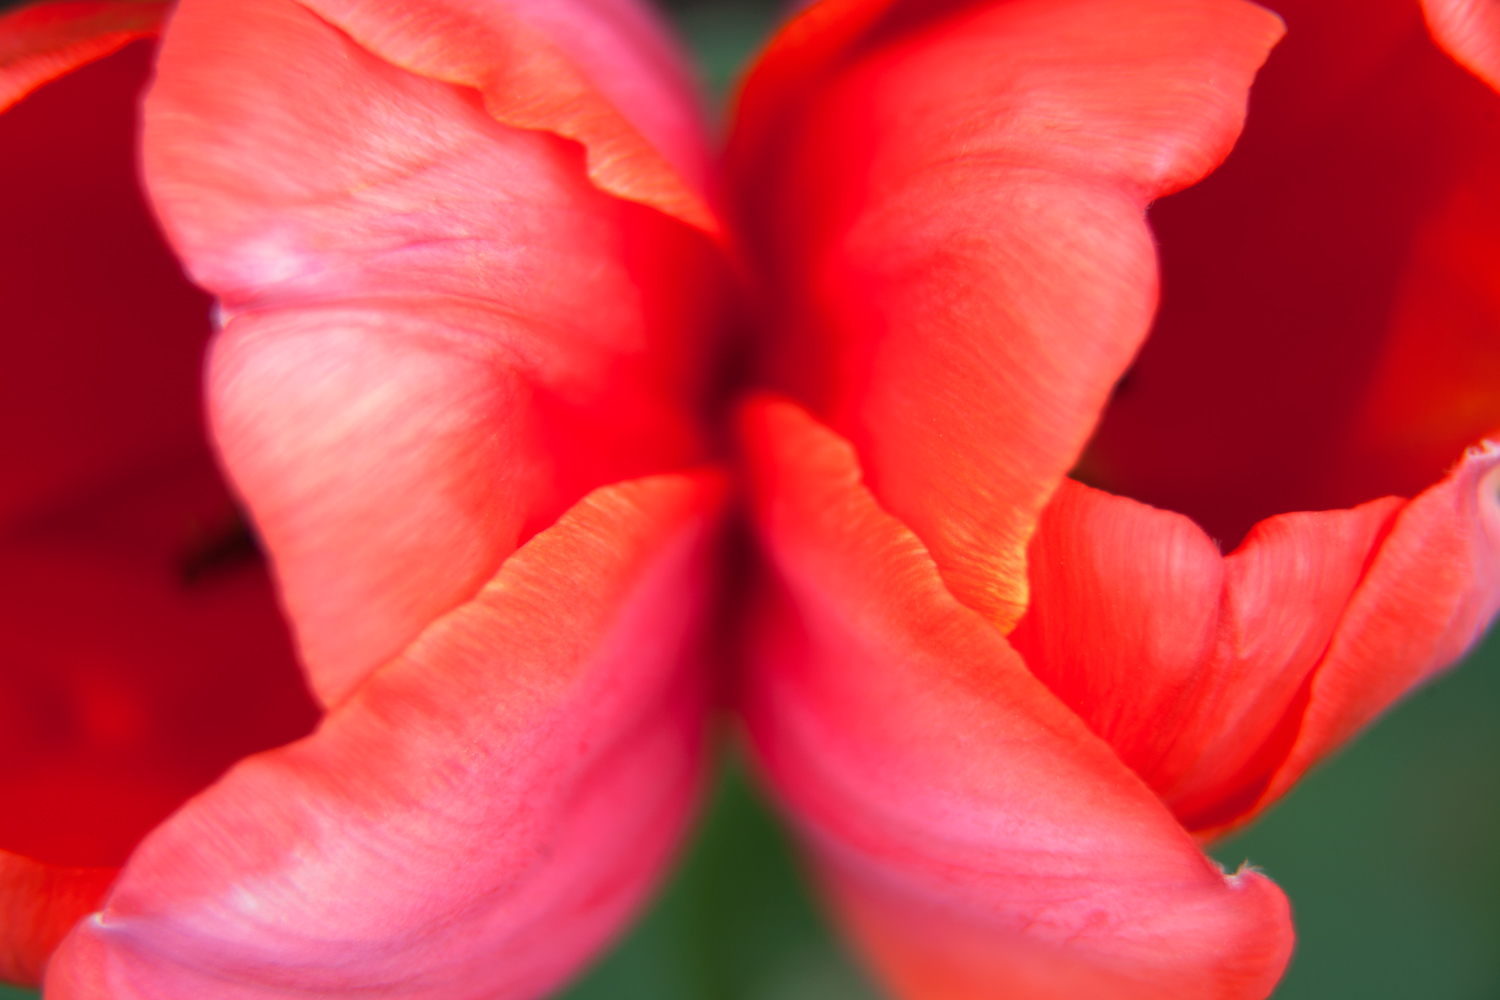 https://i0.wp.com/digital-photography-school.com/wp-content/uploads/2018/11/5-ways-to-photograph-flowers-red-tulips.jpg?resize=1500%2C1000&ssl=1